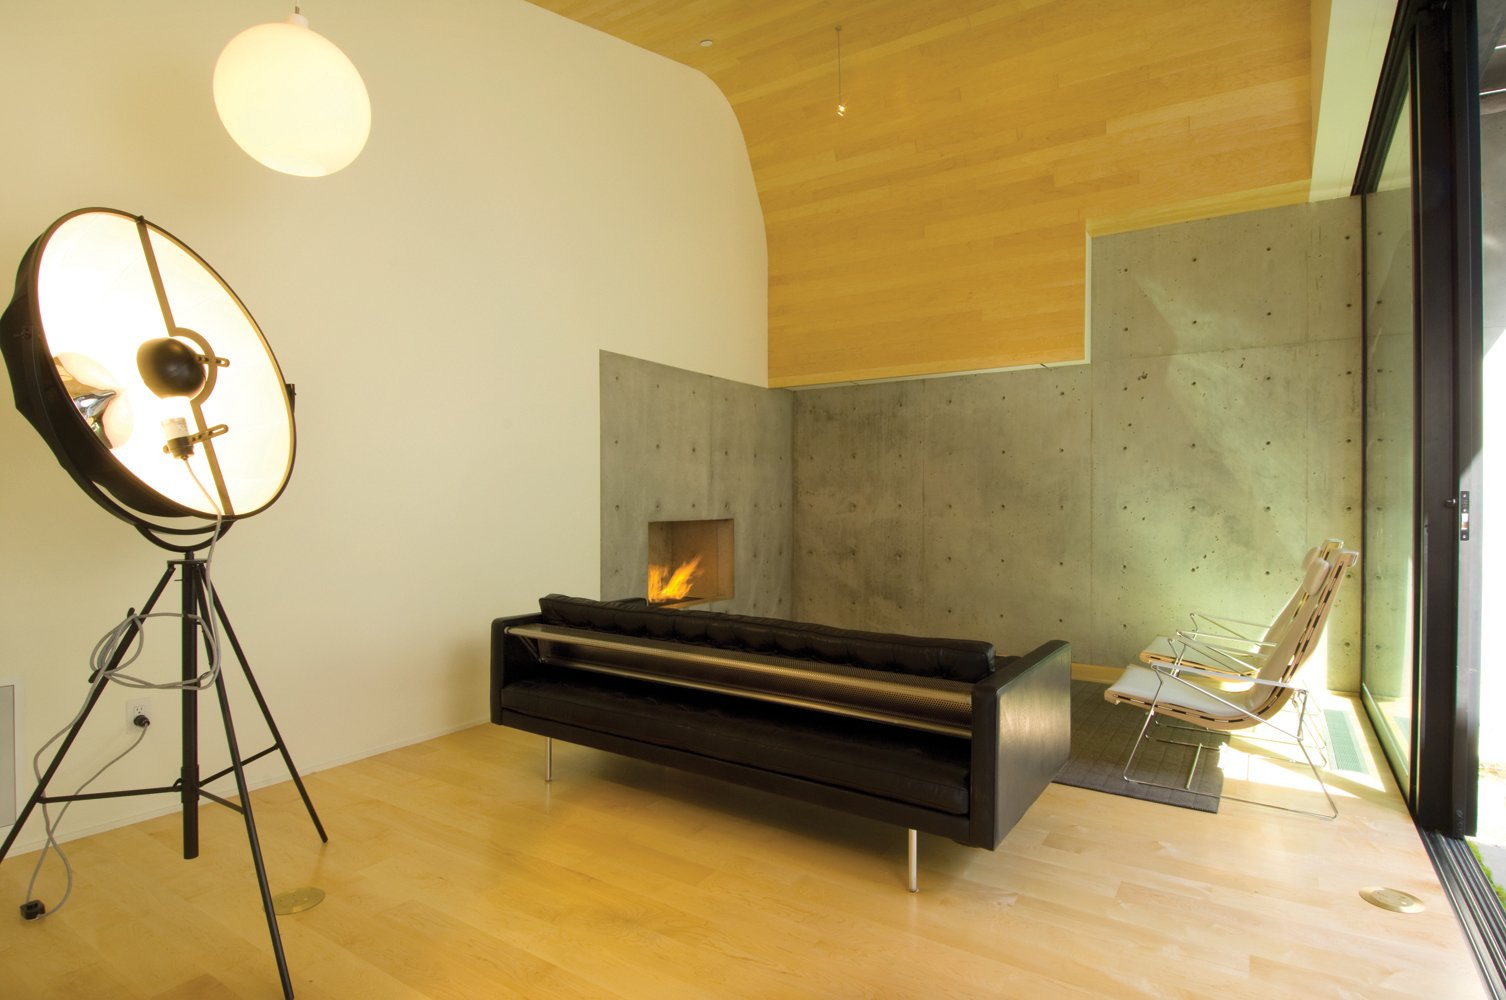 Living Room, Sofa, Chair, Light Hardwood Floor, Ceiling Lighting, and Corner Fireplace  Courtyard House on a Steep Site by Robert Hutchison Architecture